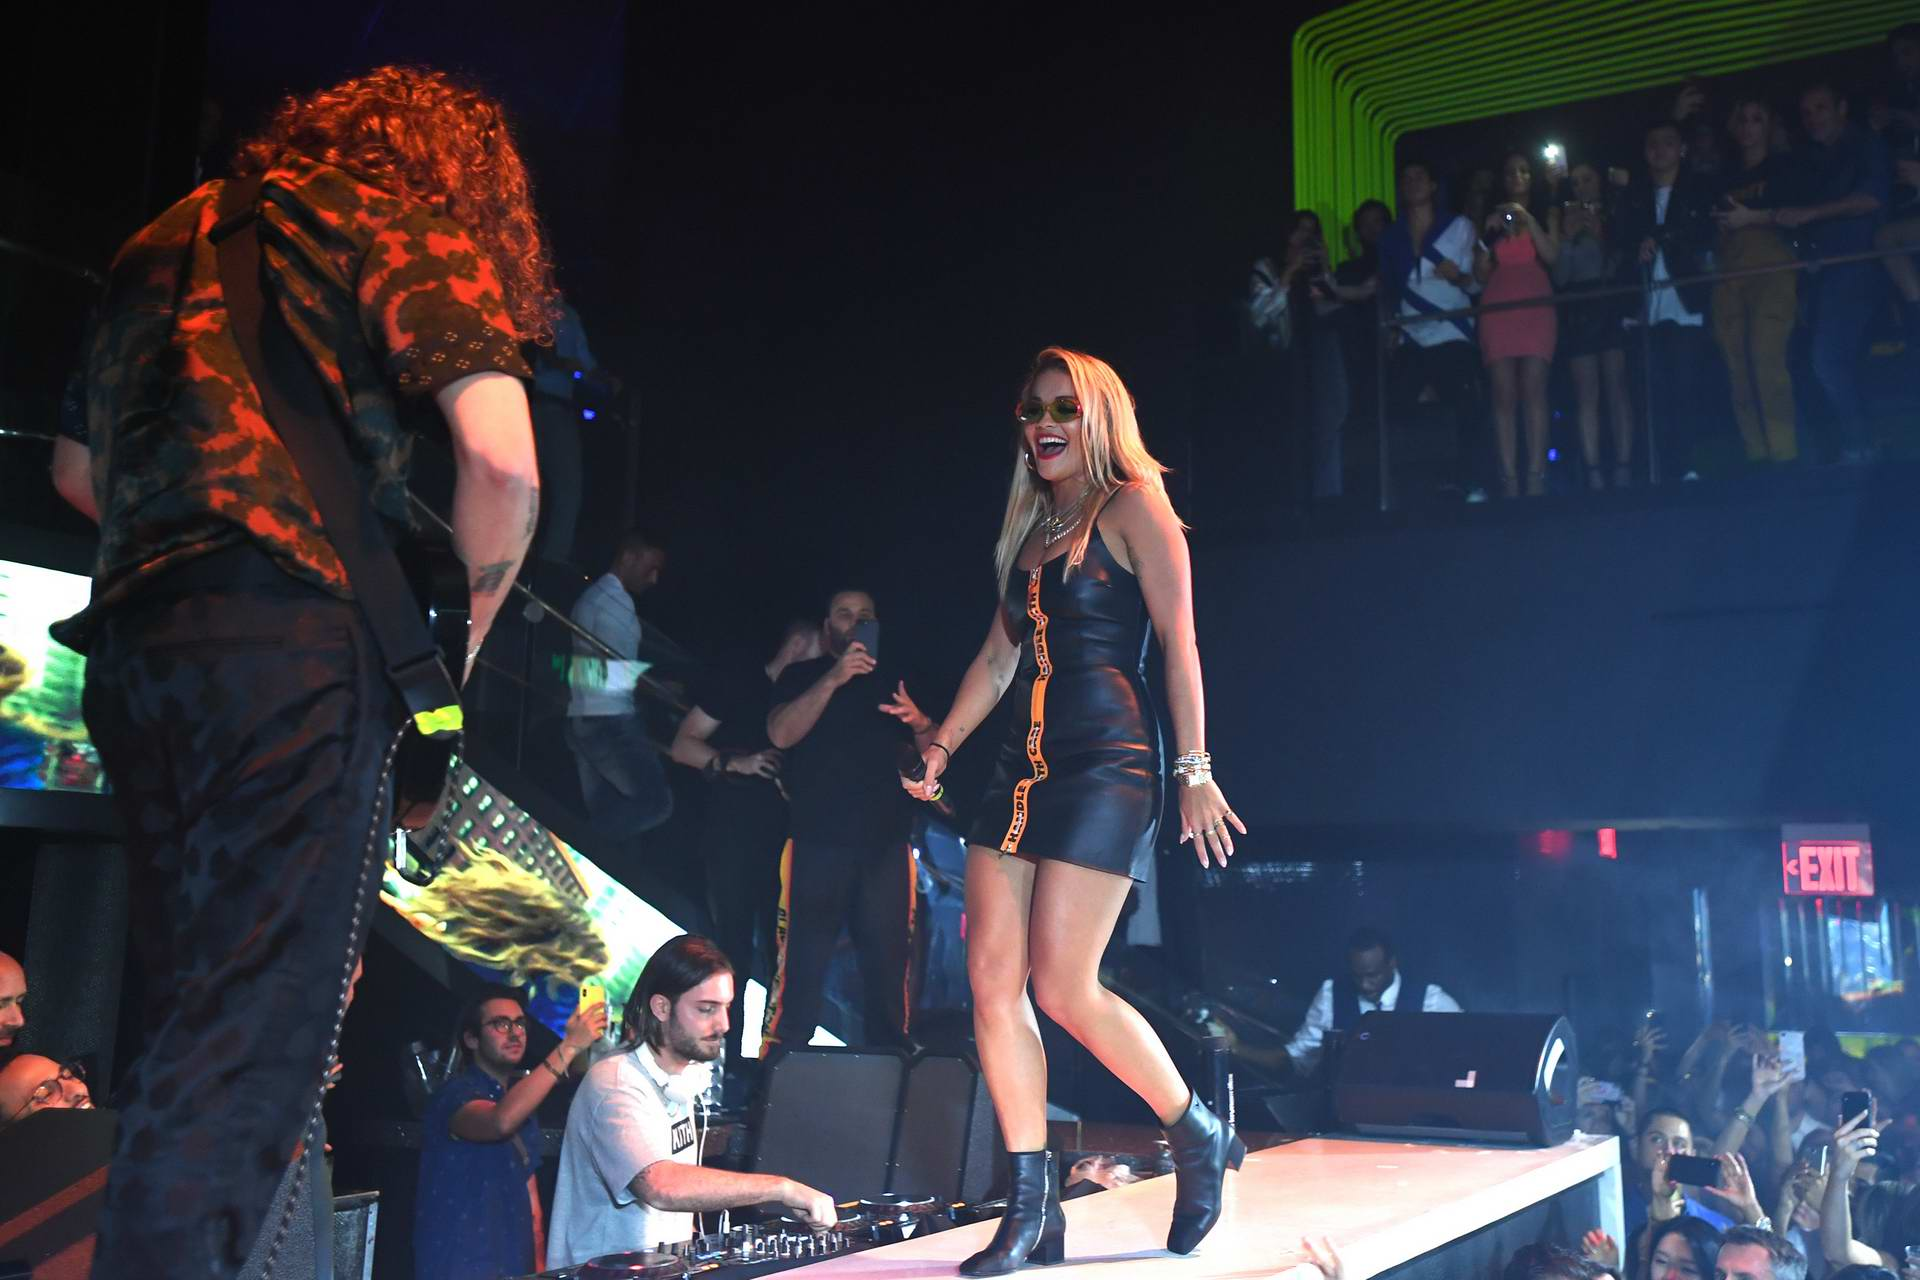 Rita Ora and Andrew Watt performs live at LIV at the Fontainebleau in Miami, Florida